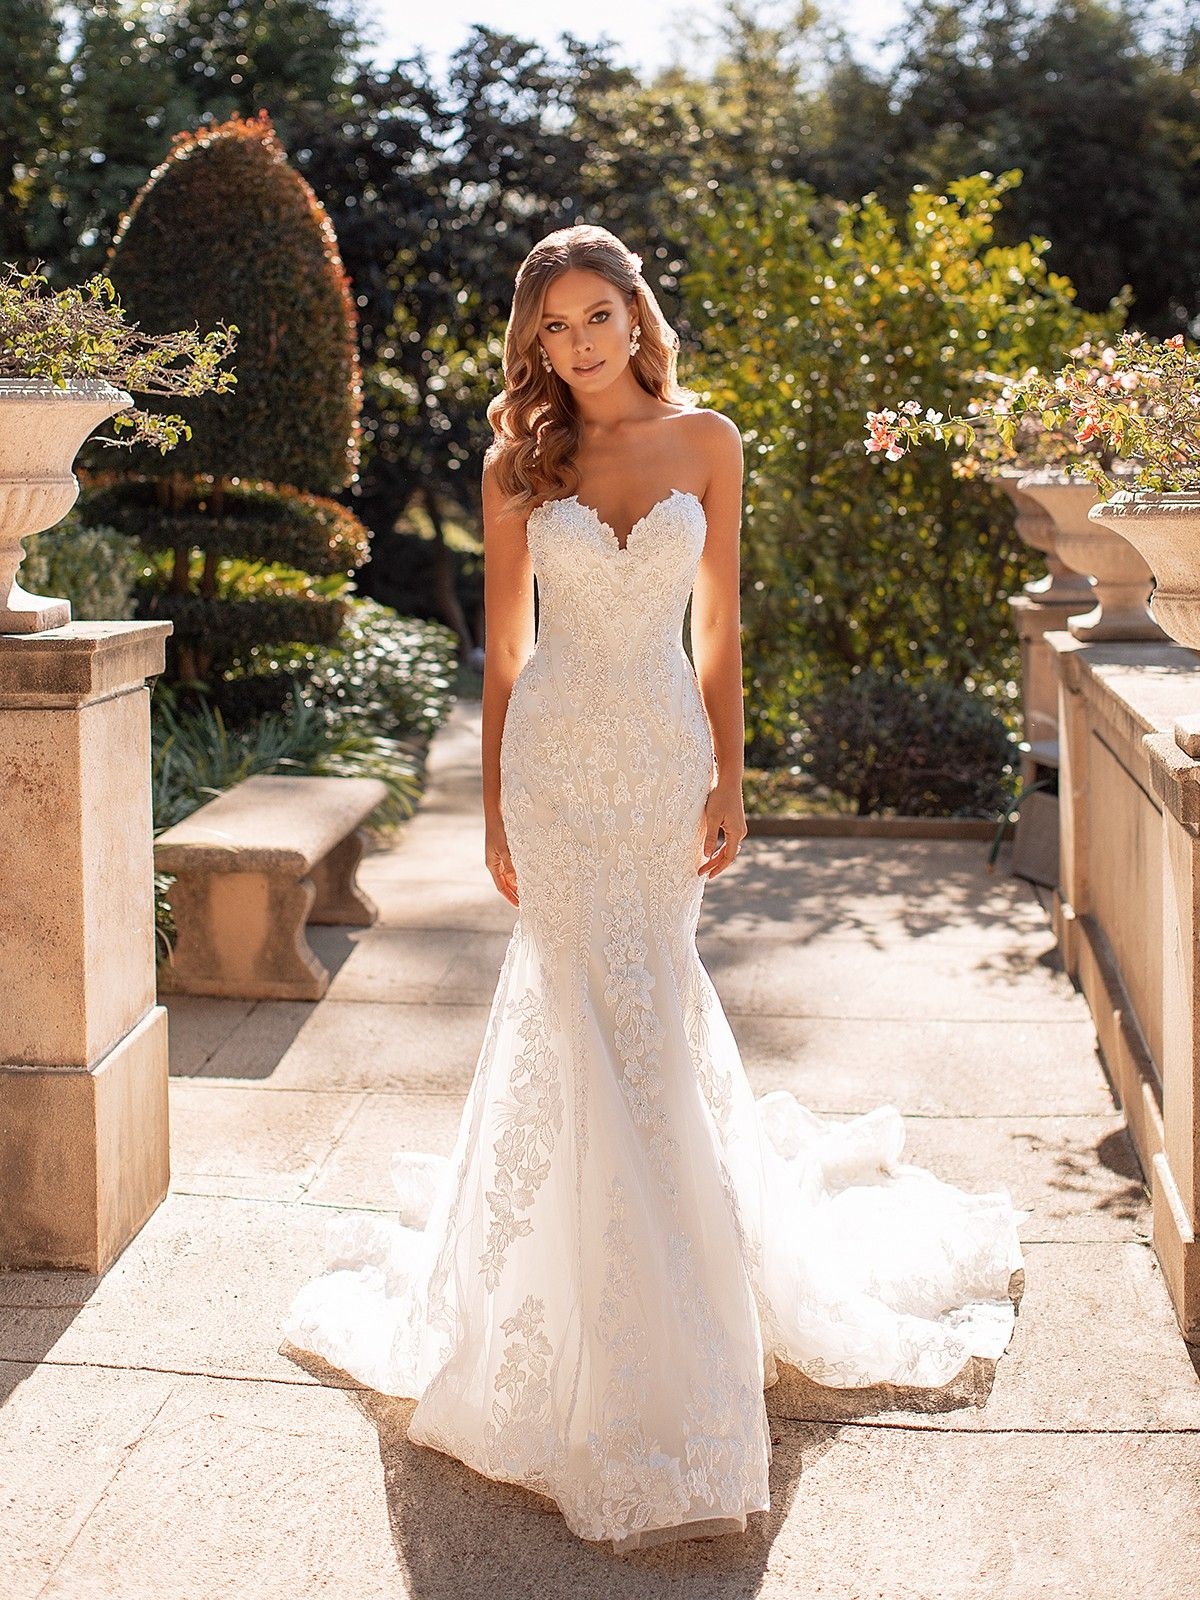 Lux D8245 Sparkle Tulle Lavish Mermaid Wedding Gown In 2020 Strapless Wedding Dress Mermaid Lace Mermaid Wedding Dress Wedding Dresses Mermaid Sweetheart